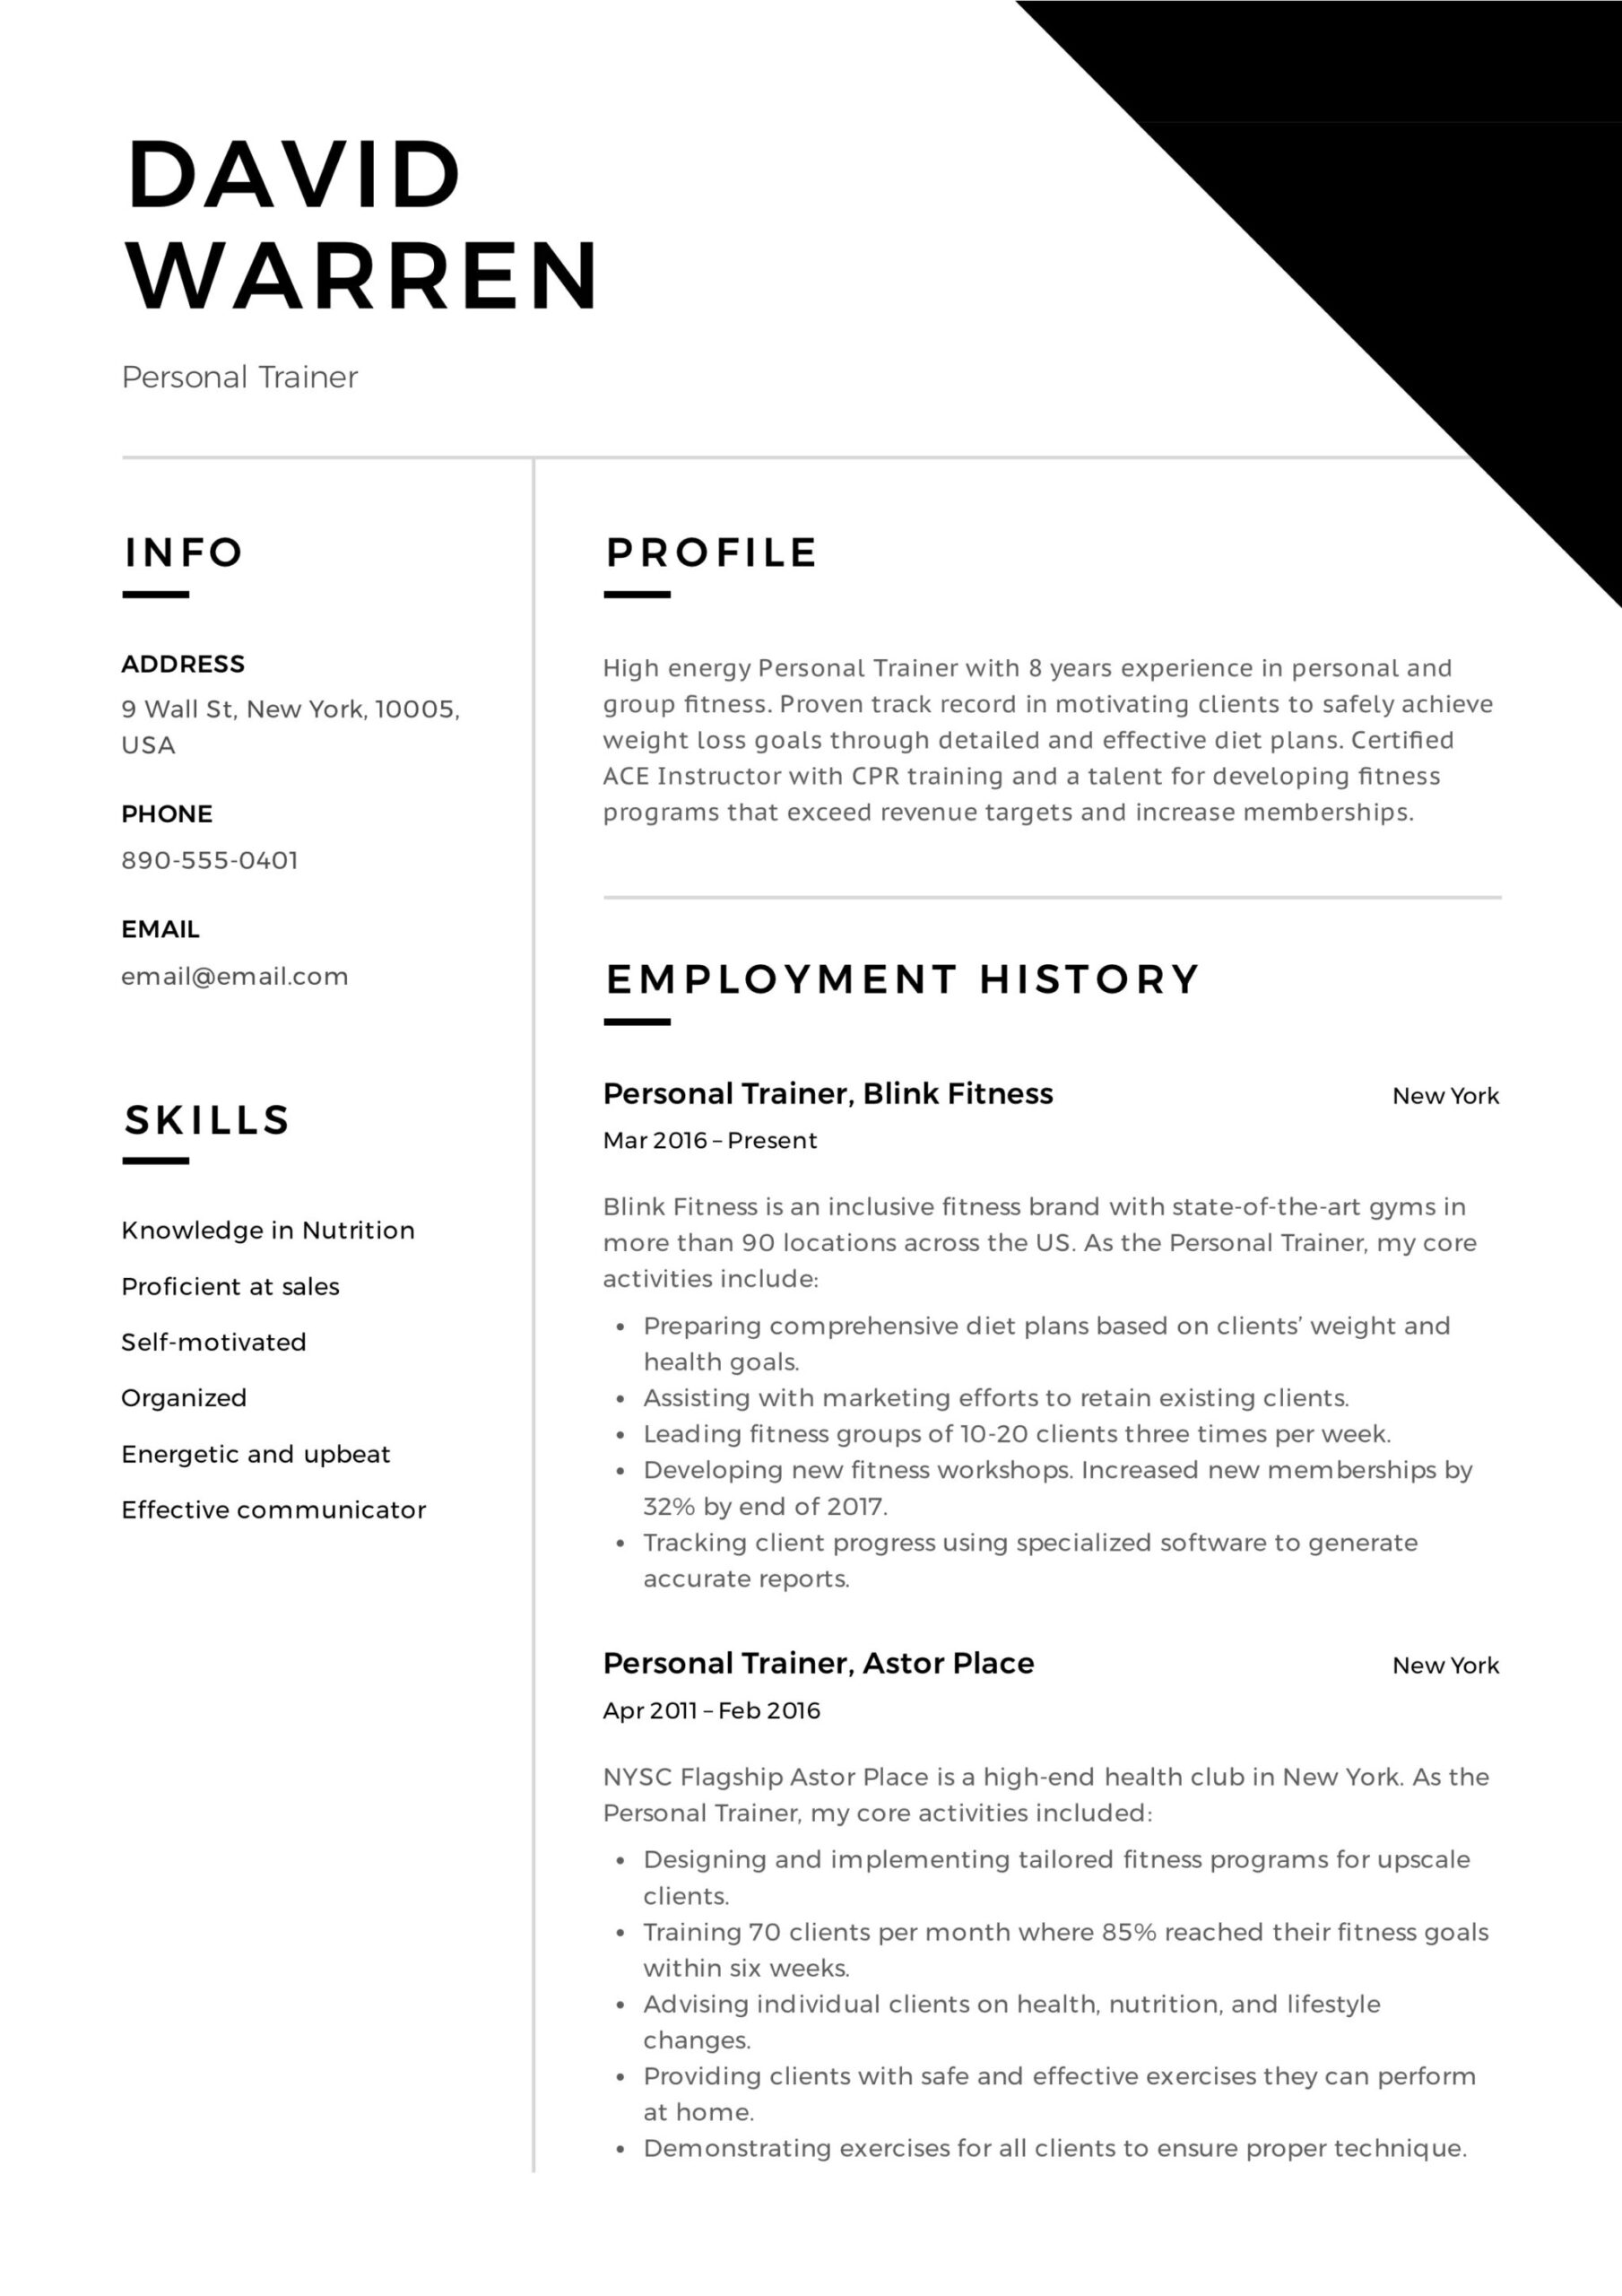 personal trainer resume guide examples pdf for gym job sample trainer11 electrician Resume Resume For Gym Trainer Job